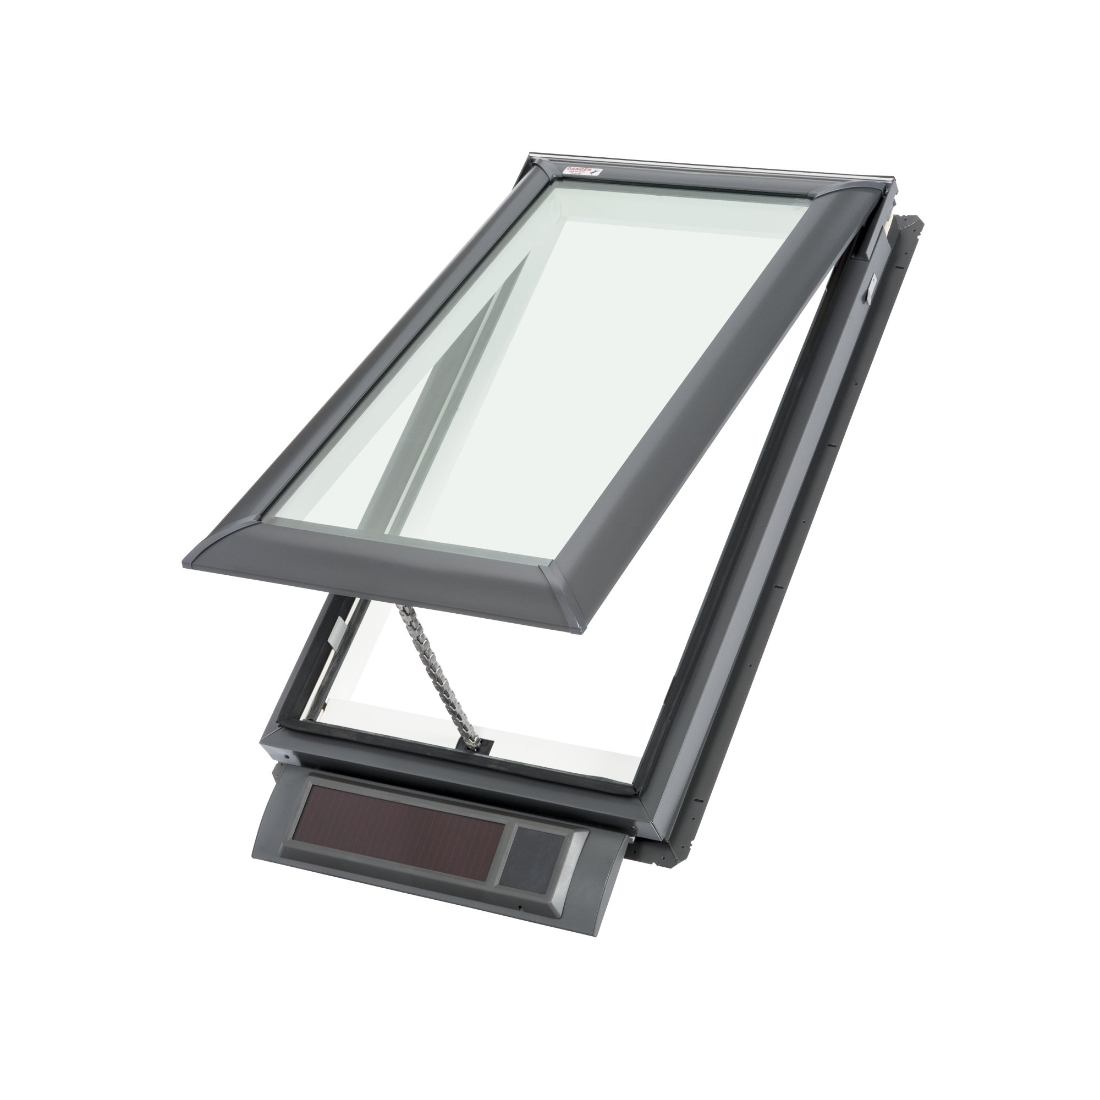 Solar Powered Skylight 780 x 1400mm